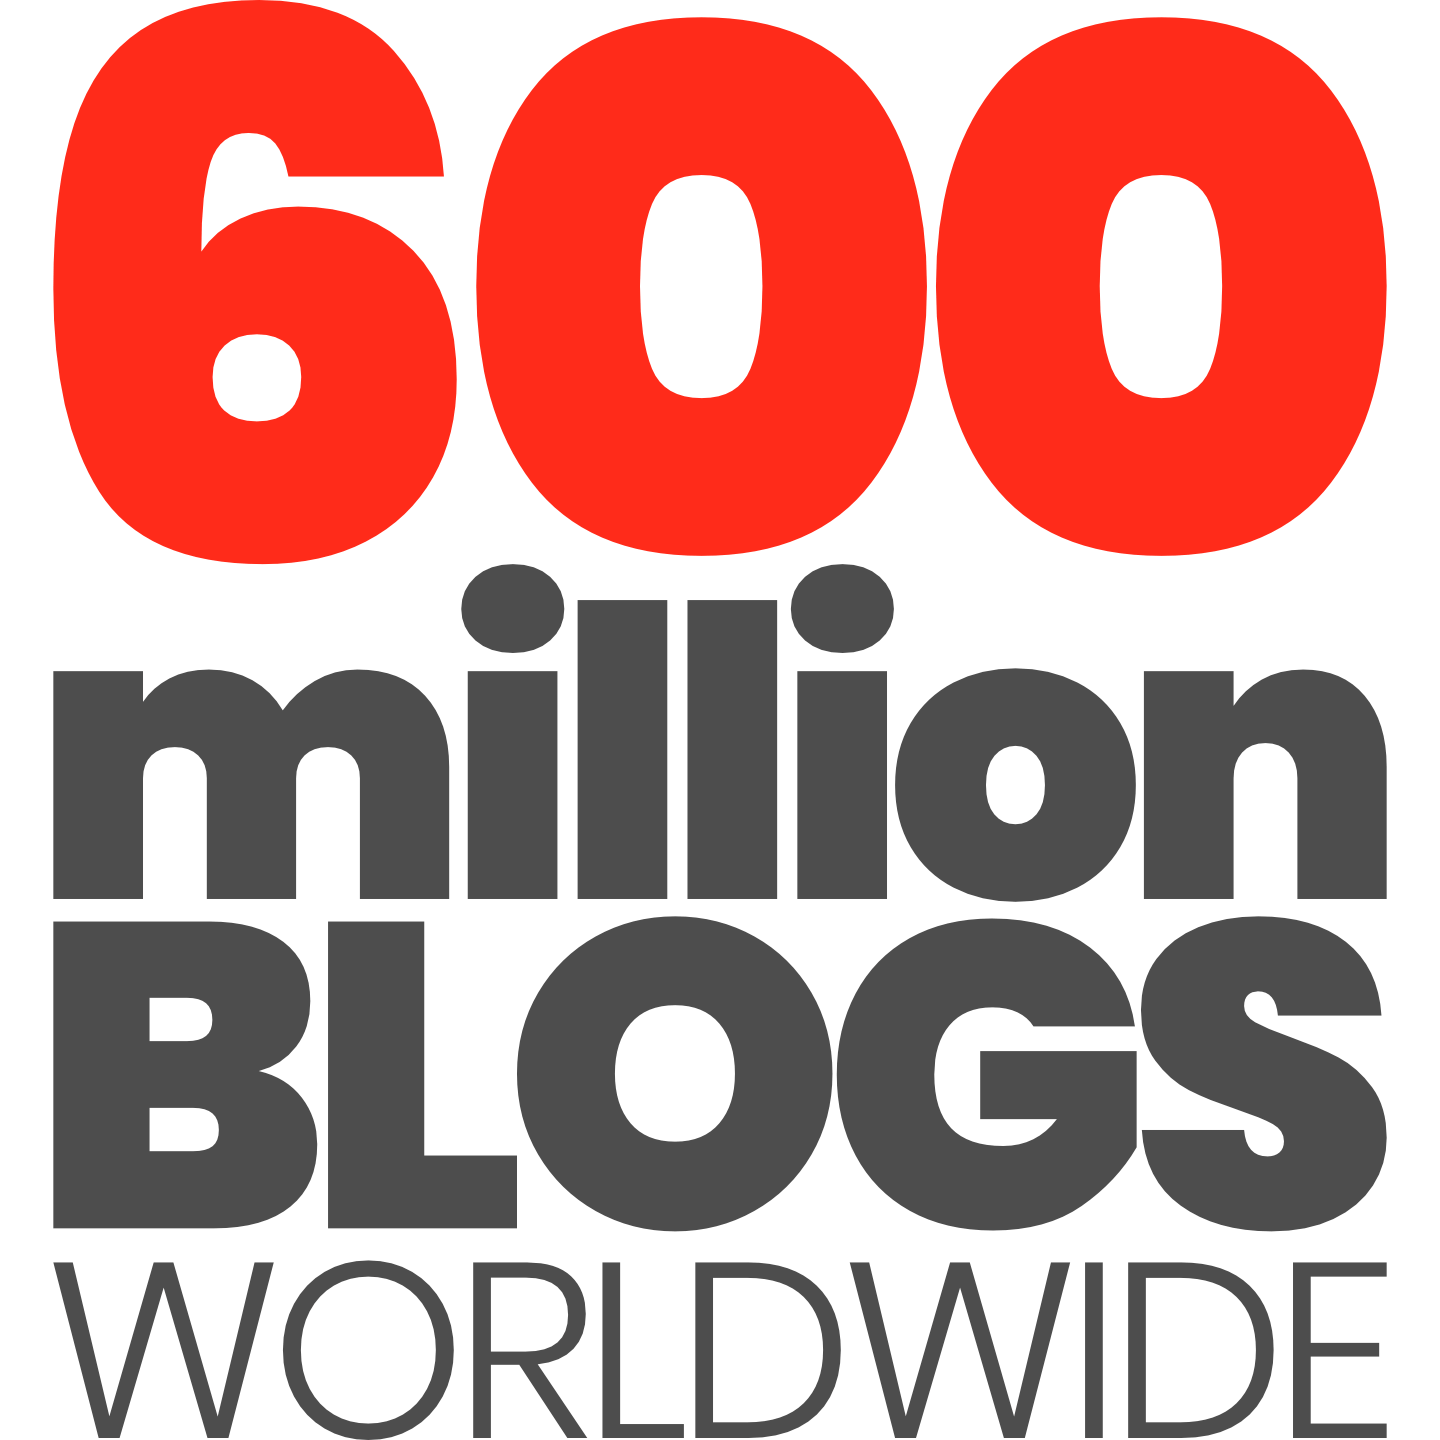 600 MILLION BLOGS